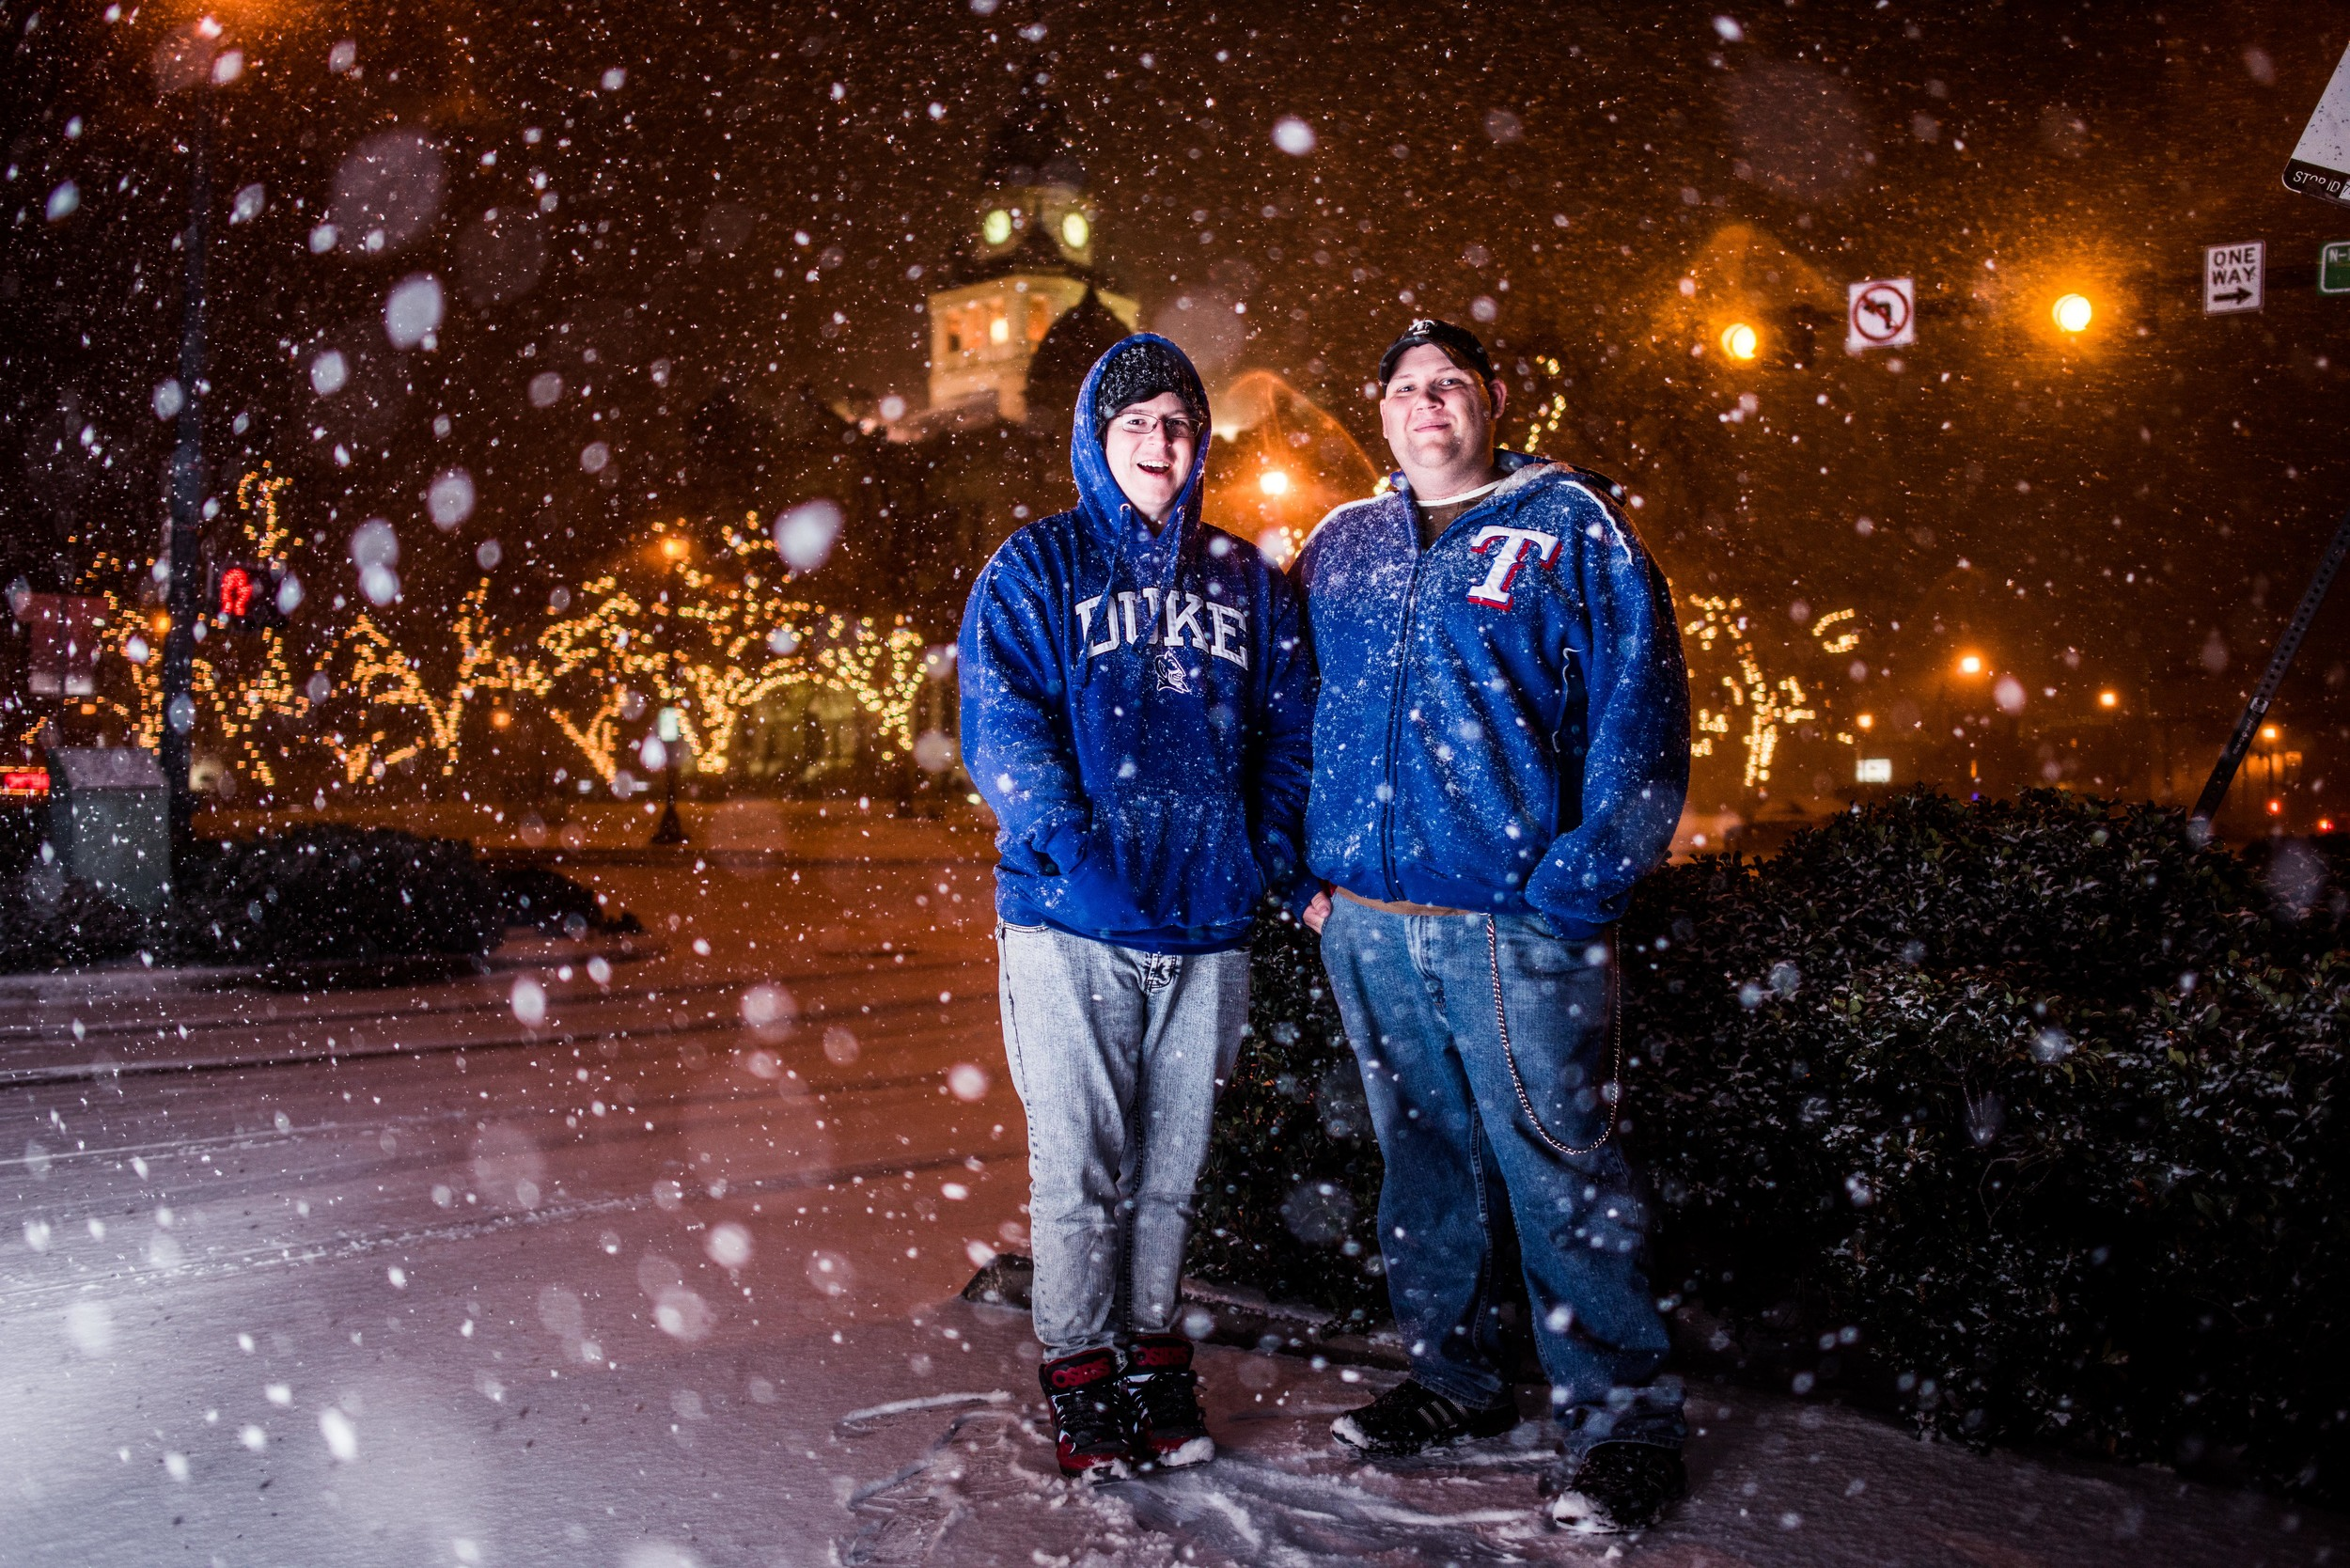 """I met these two Dentonites on their way to Loophole. I scribbled their names down on a scratch sheet of paper, which has been lost to the blizzard. They shall be affectionally known as """"Duke"""" and """"Texas."""""""